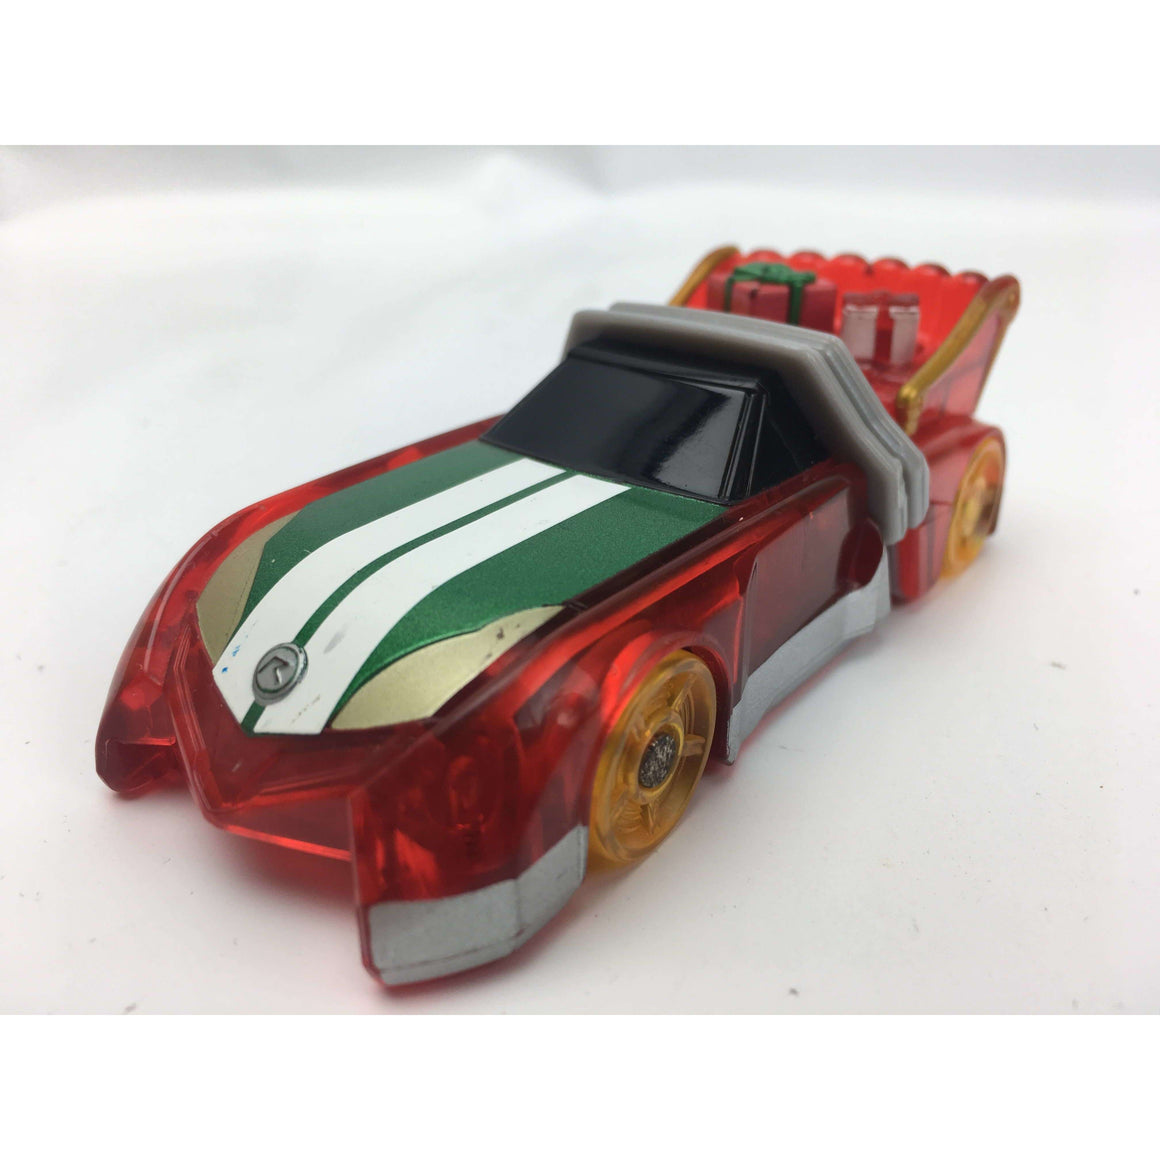 CSTOYS INTERNATIONAL:[LOOSE] Kamen Rider Drive: Shift Car Shift Speed (Chara-Deco Christmas Ver.)